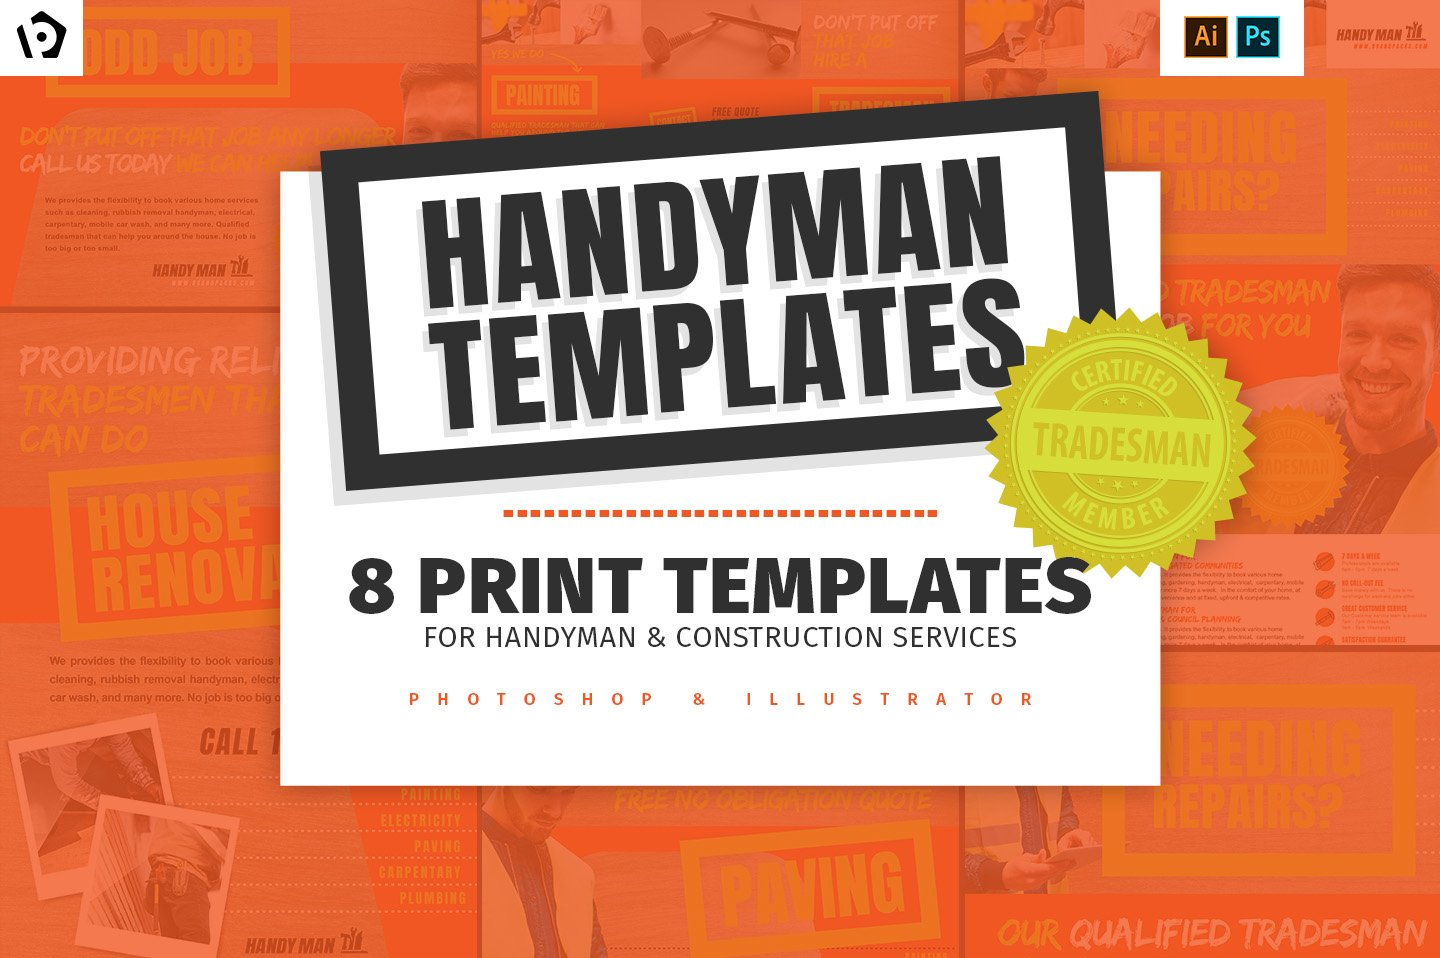 handyman templates pack v2 flyer templates creative market. Black Bedroom Furniture Sets. Home Design Ideas